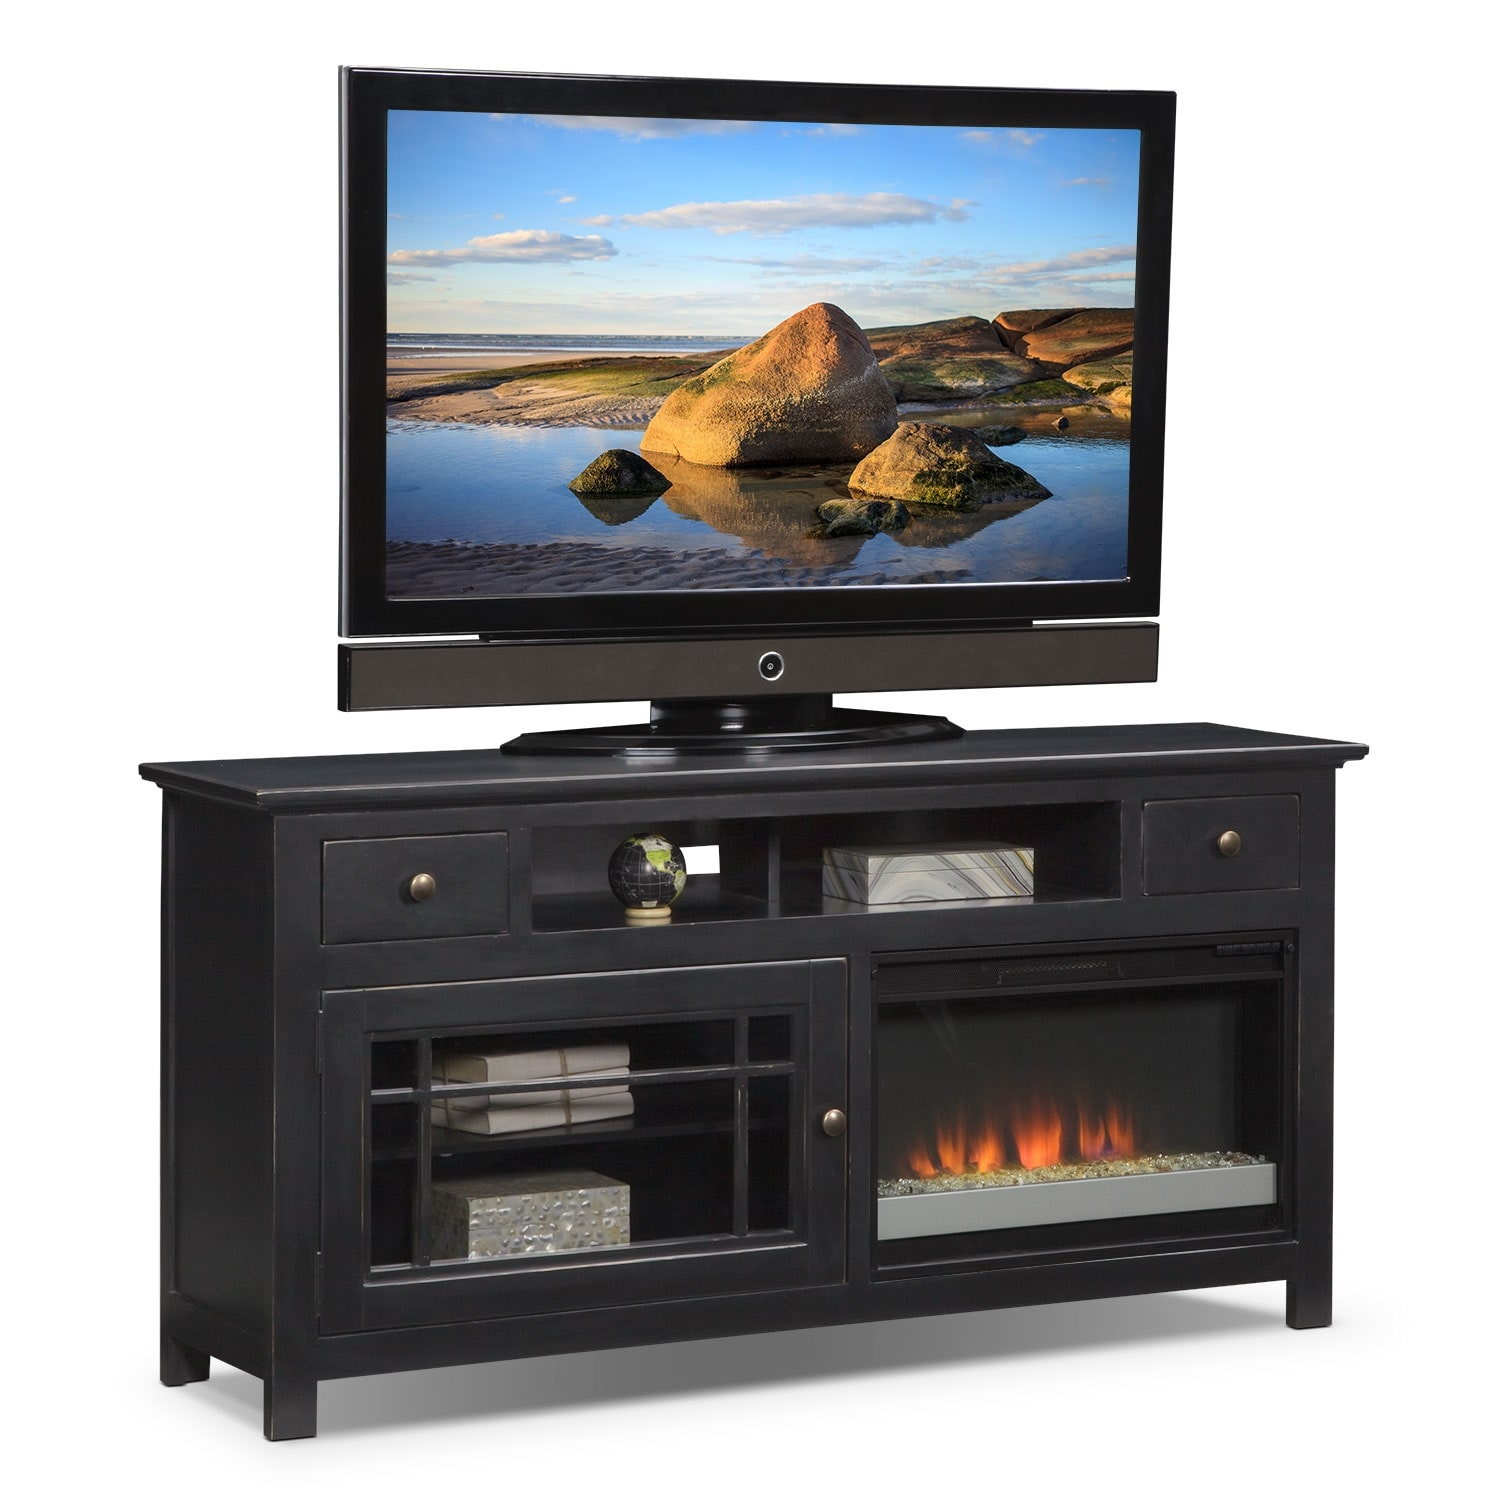 "Entertainment Furniture - Merrick 64"" Fireplace TV Stand with Contemporary Insert - Black"